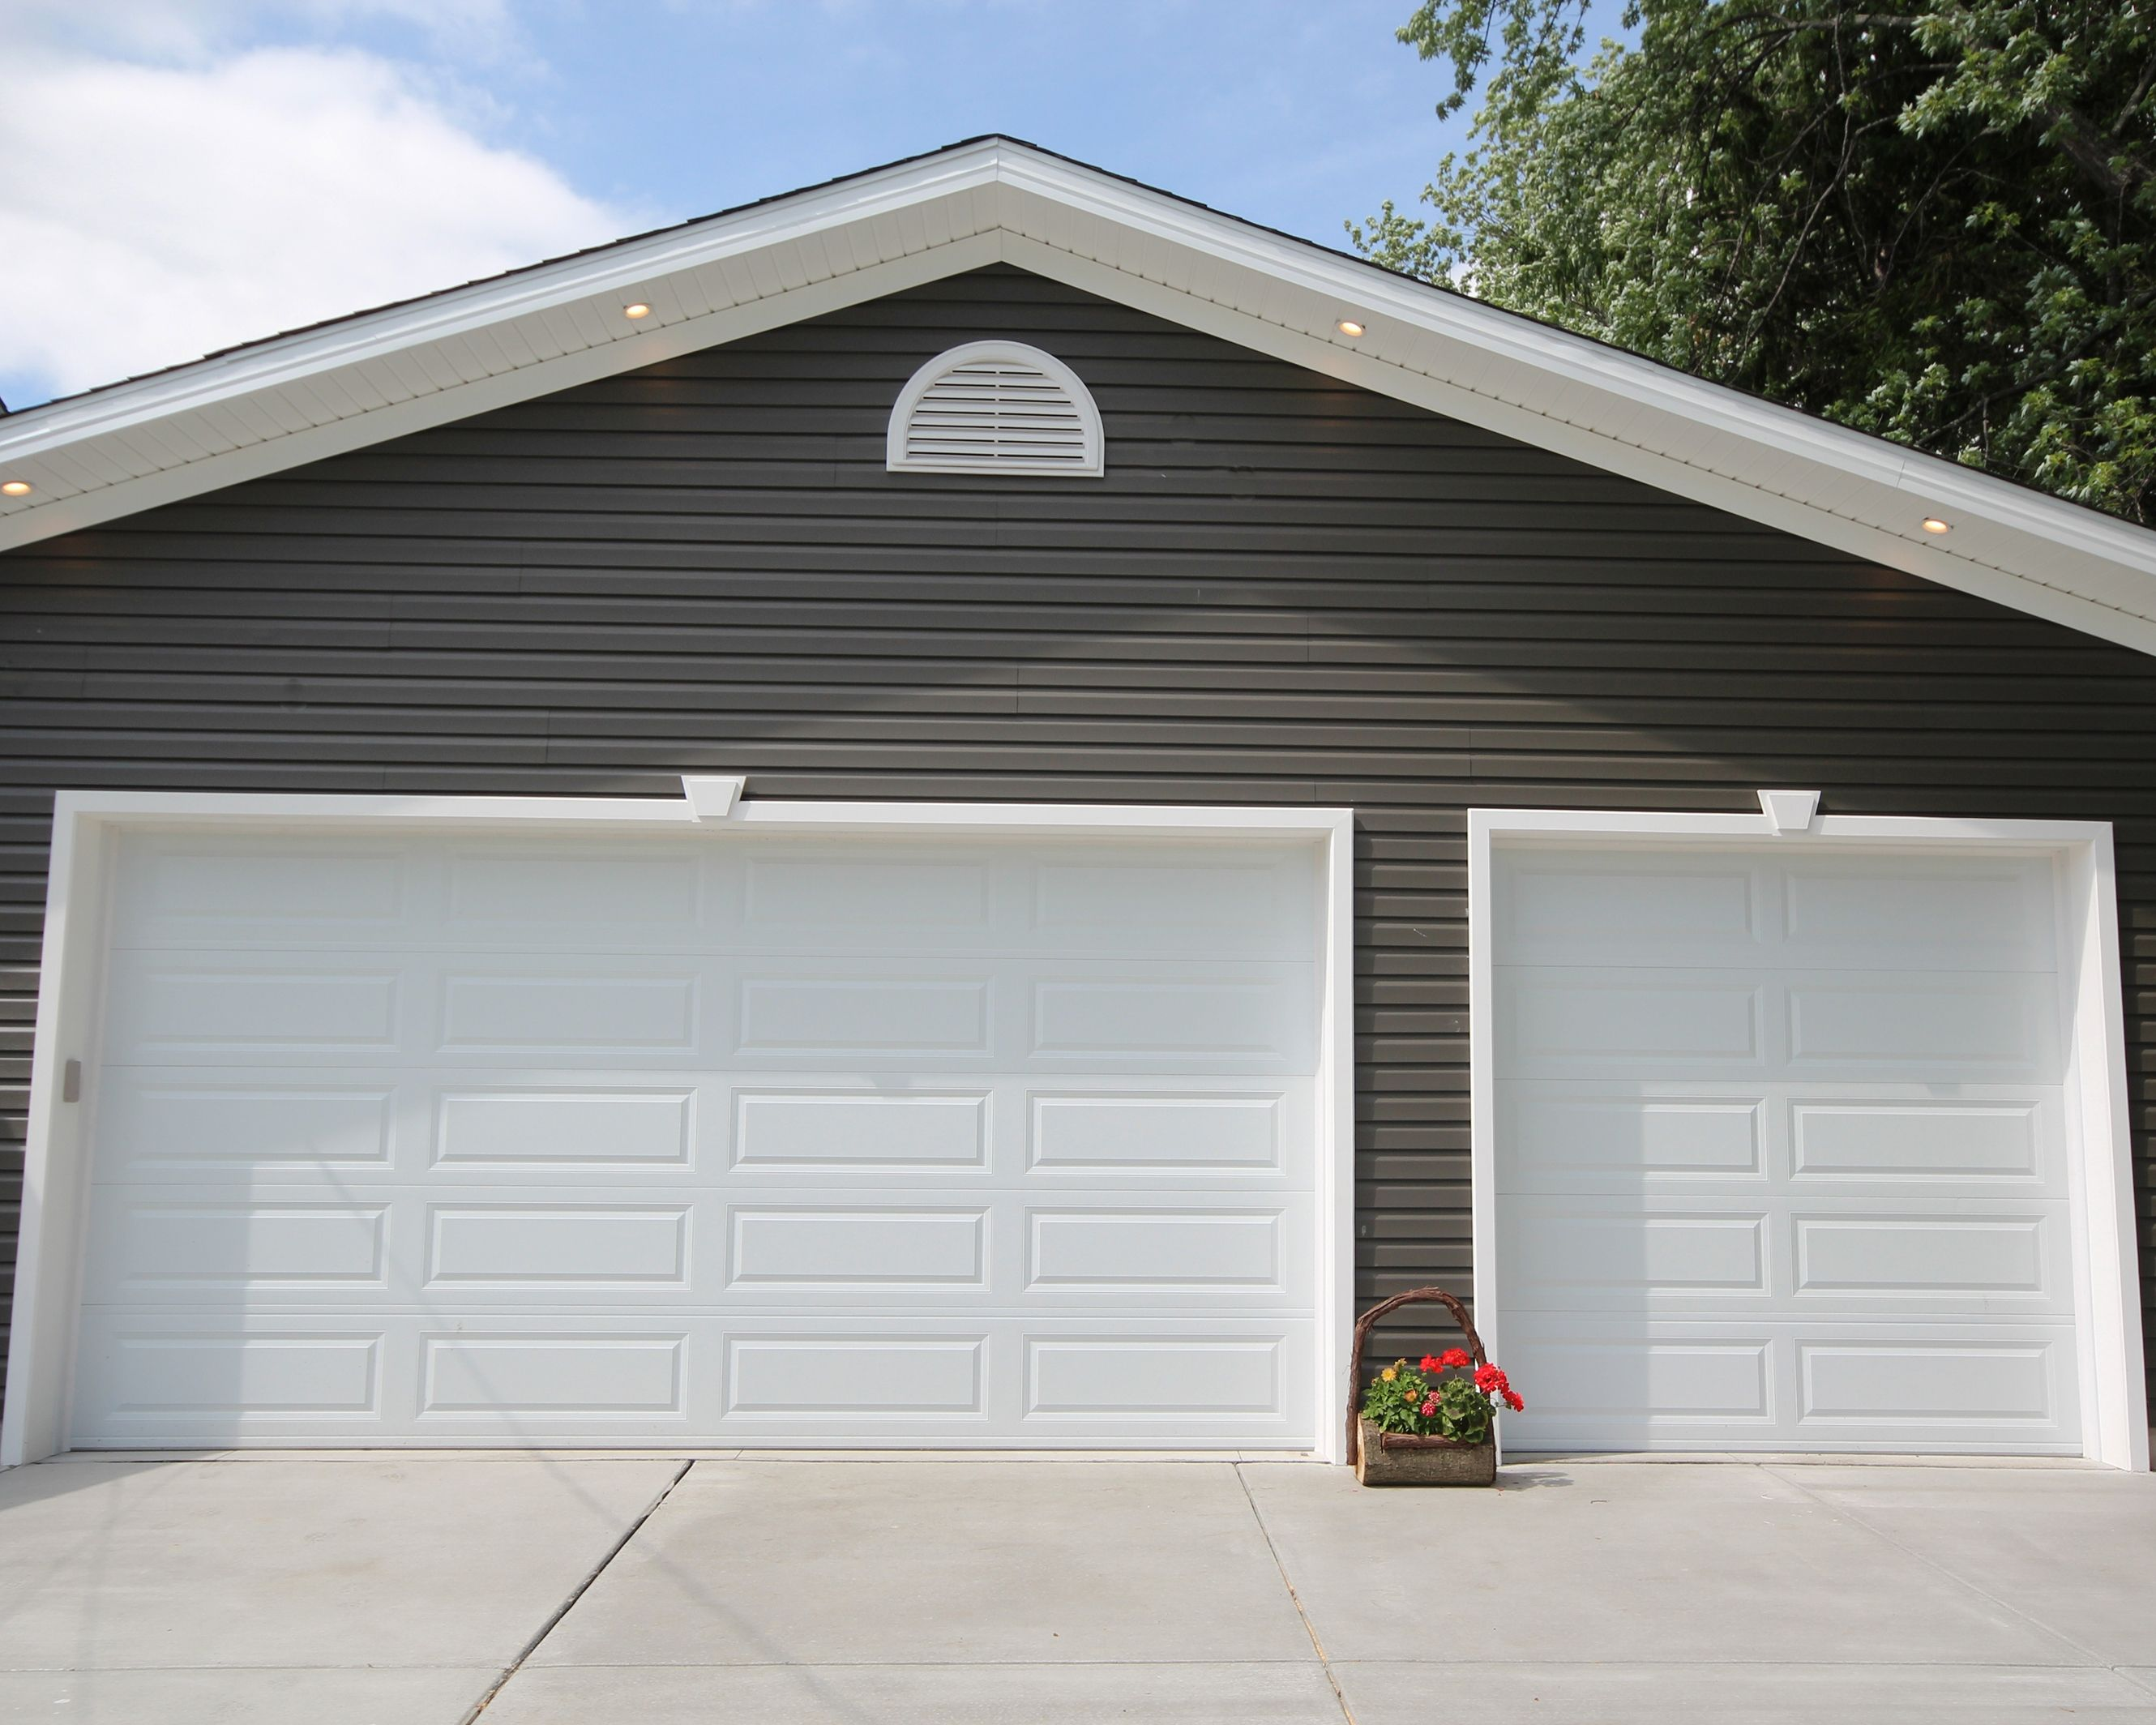 entry wilde completes garage atlas pdf january door new joe controller access remote rolling expansion genie launches